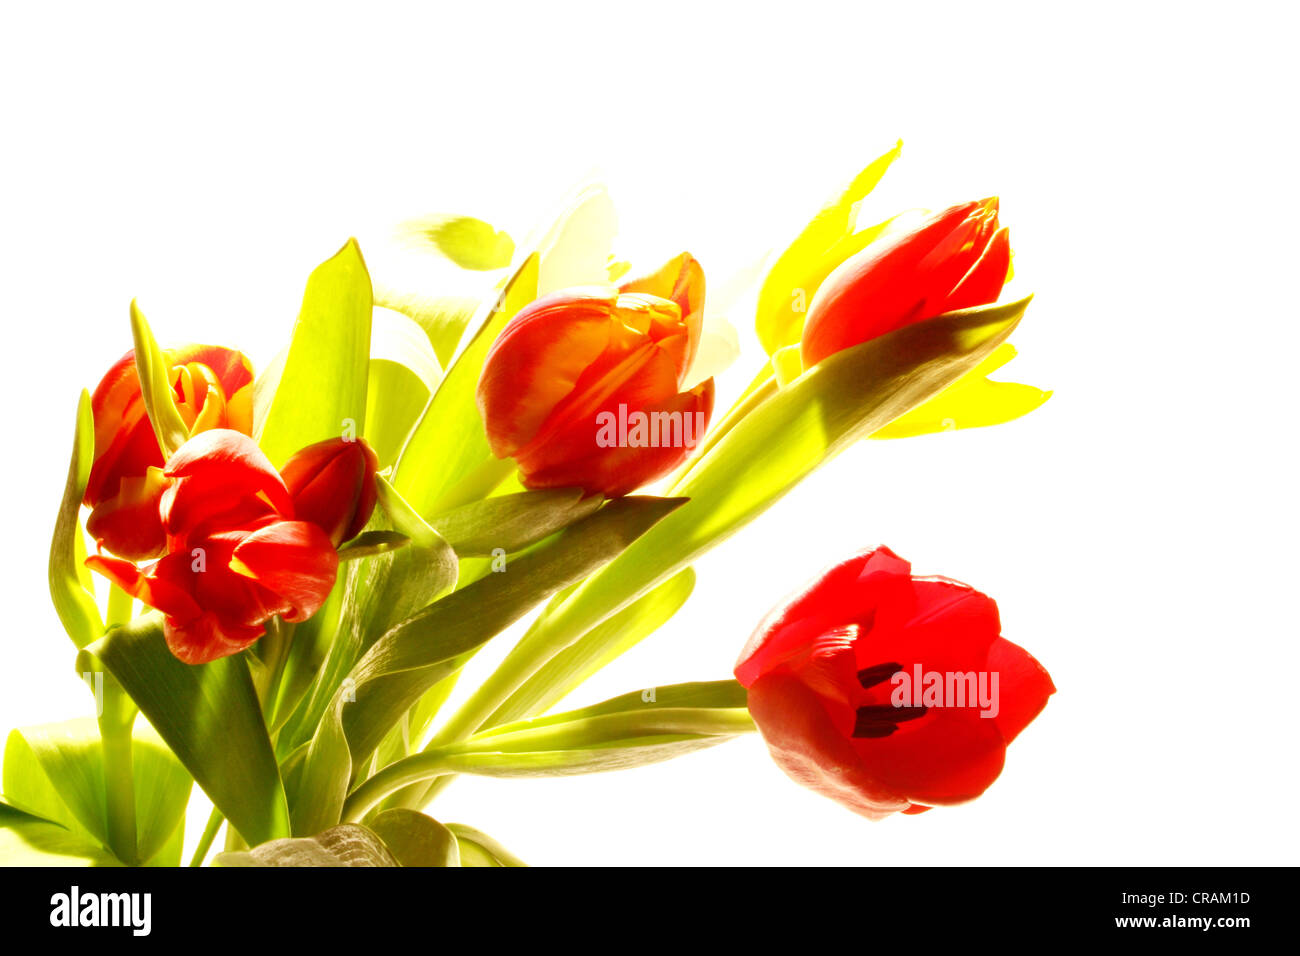 Tulips on a white background - Stock Image